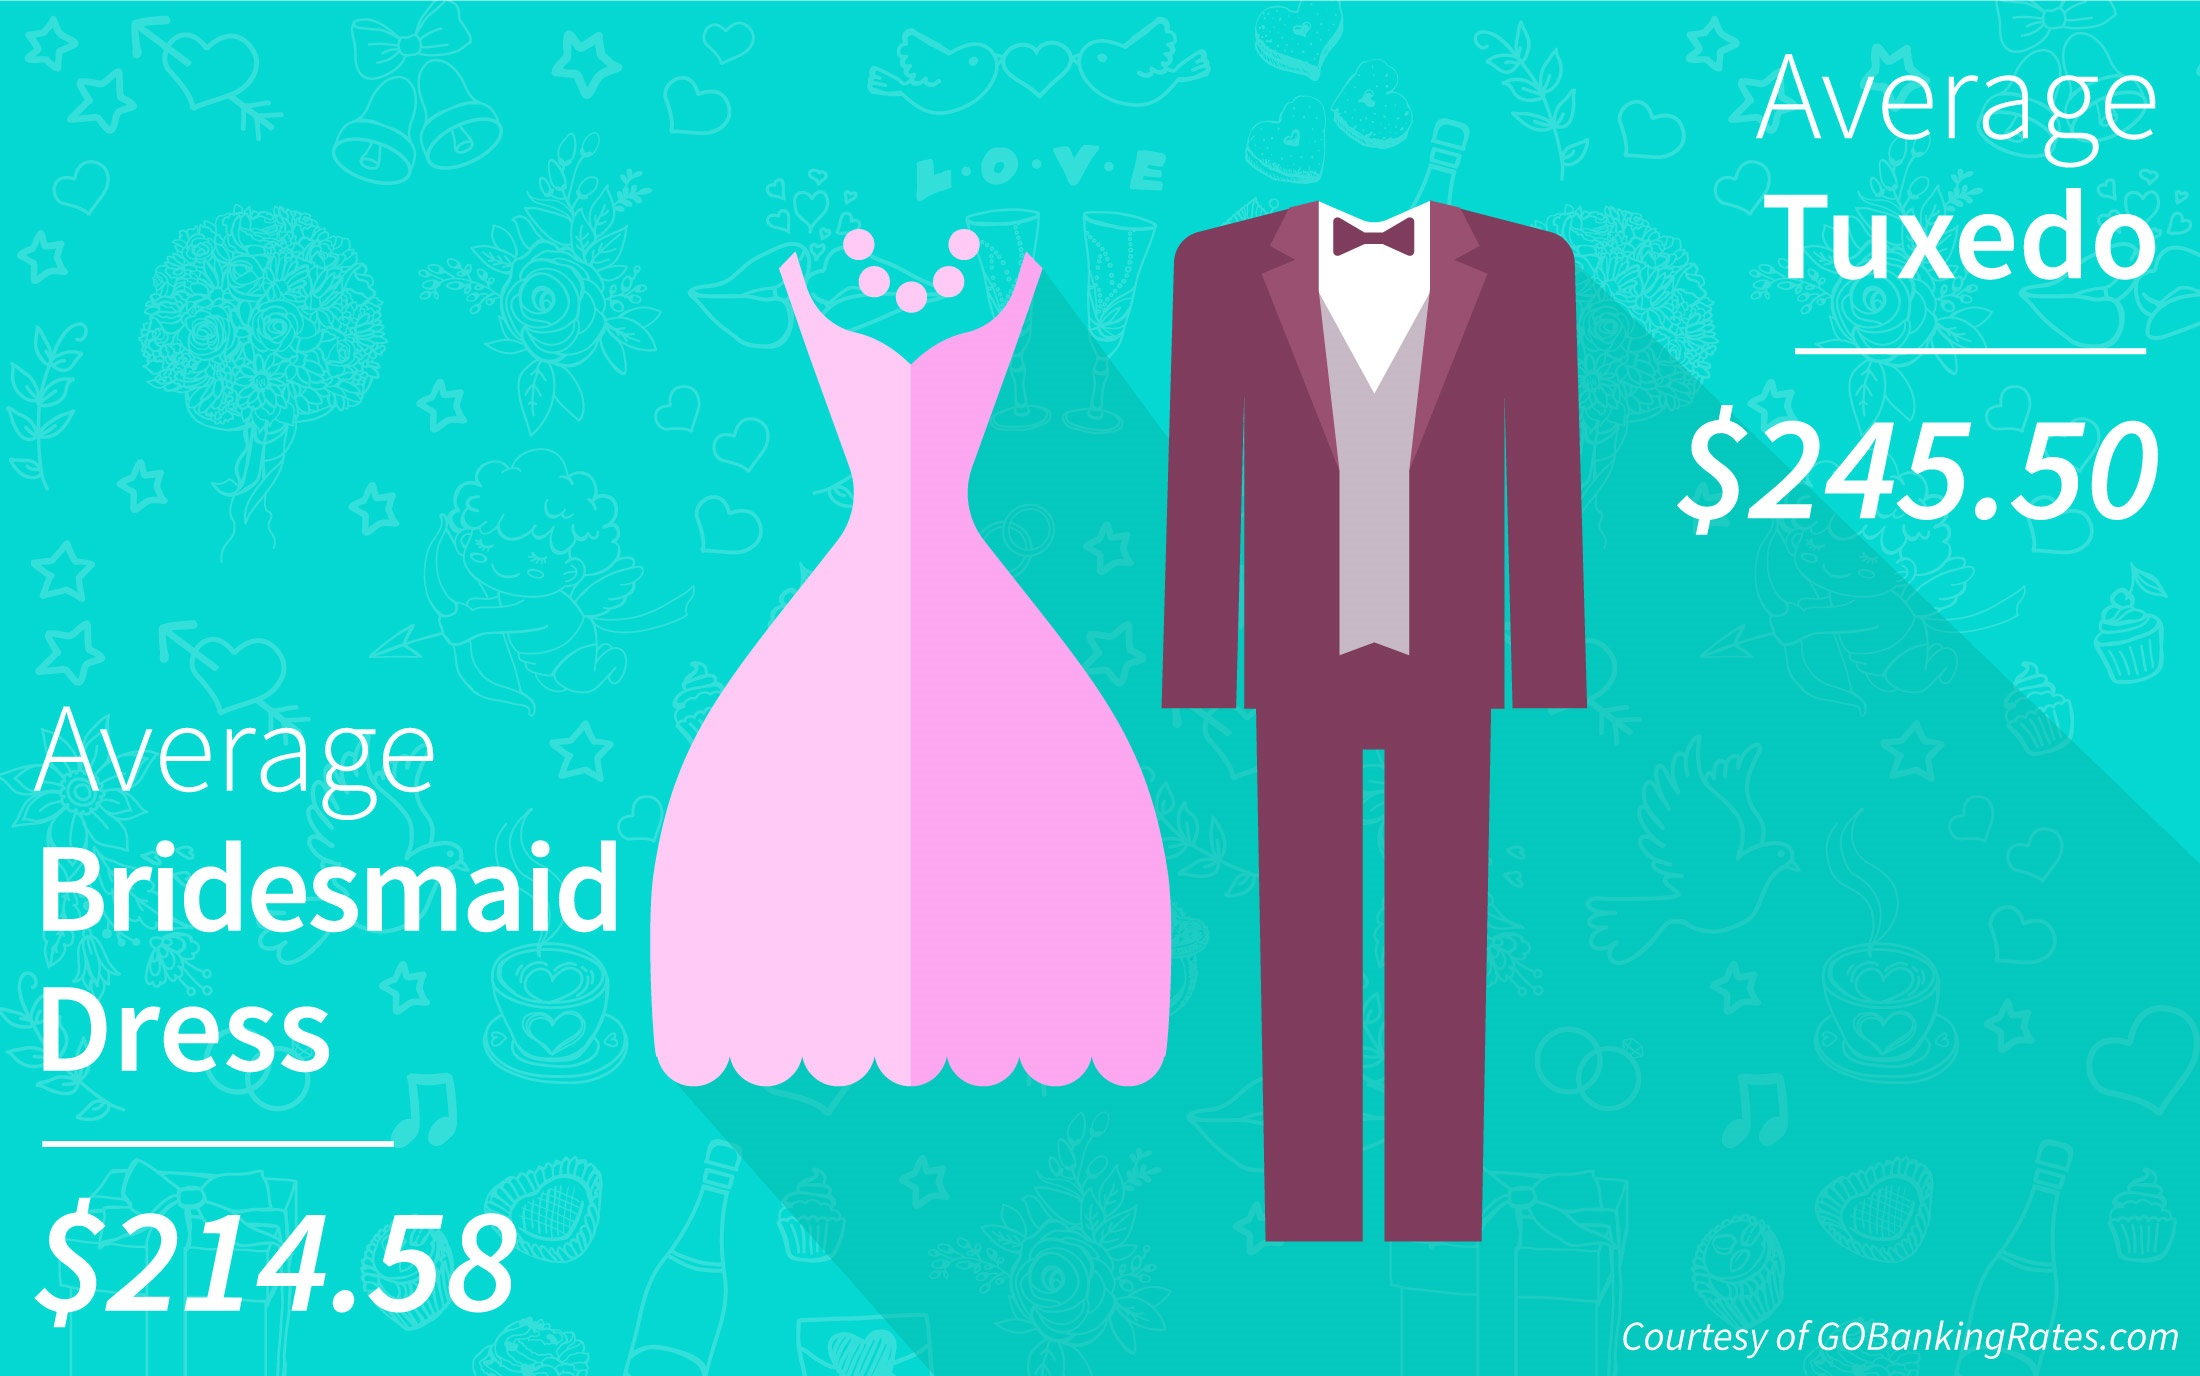 Groomsmen actually pay more than bridesmaids for wedding duties wedding party costs survey results for bridesmaid dresses and tuxedos ombrellifo Image collections